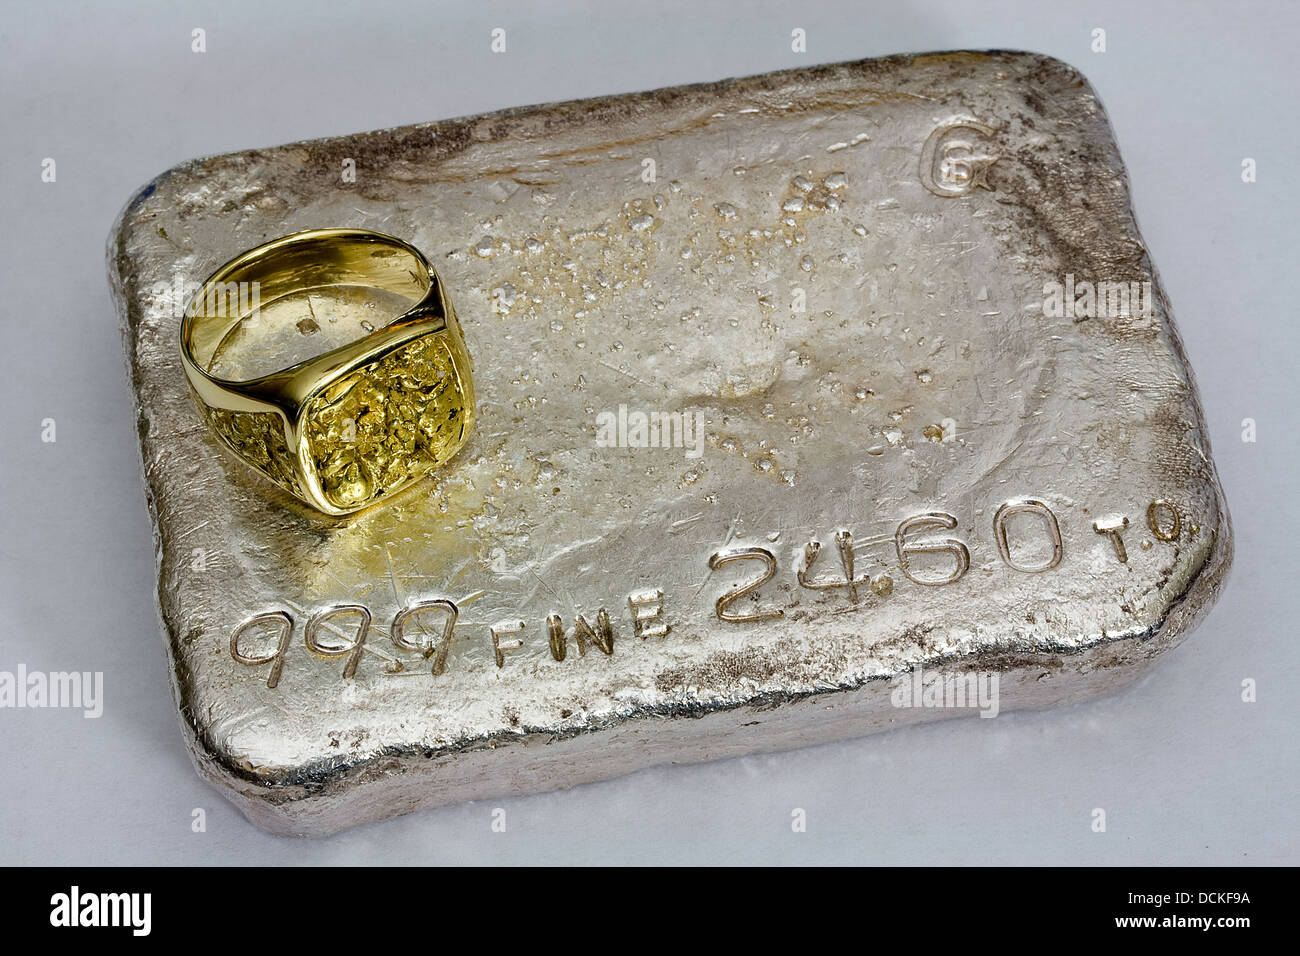 Large Gold Nugget Ring and 24.60 Troy Ounce Silver Bullion Bar (Poured Ingot) - Stock Image